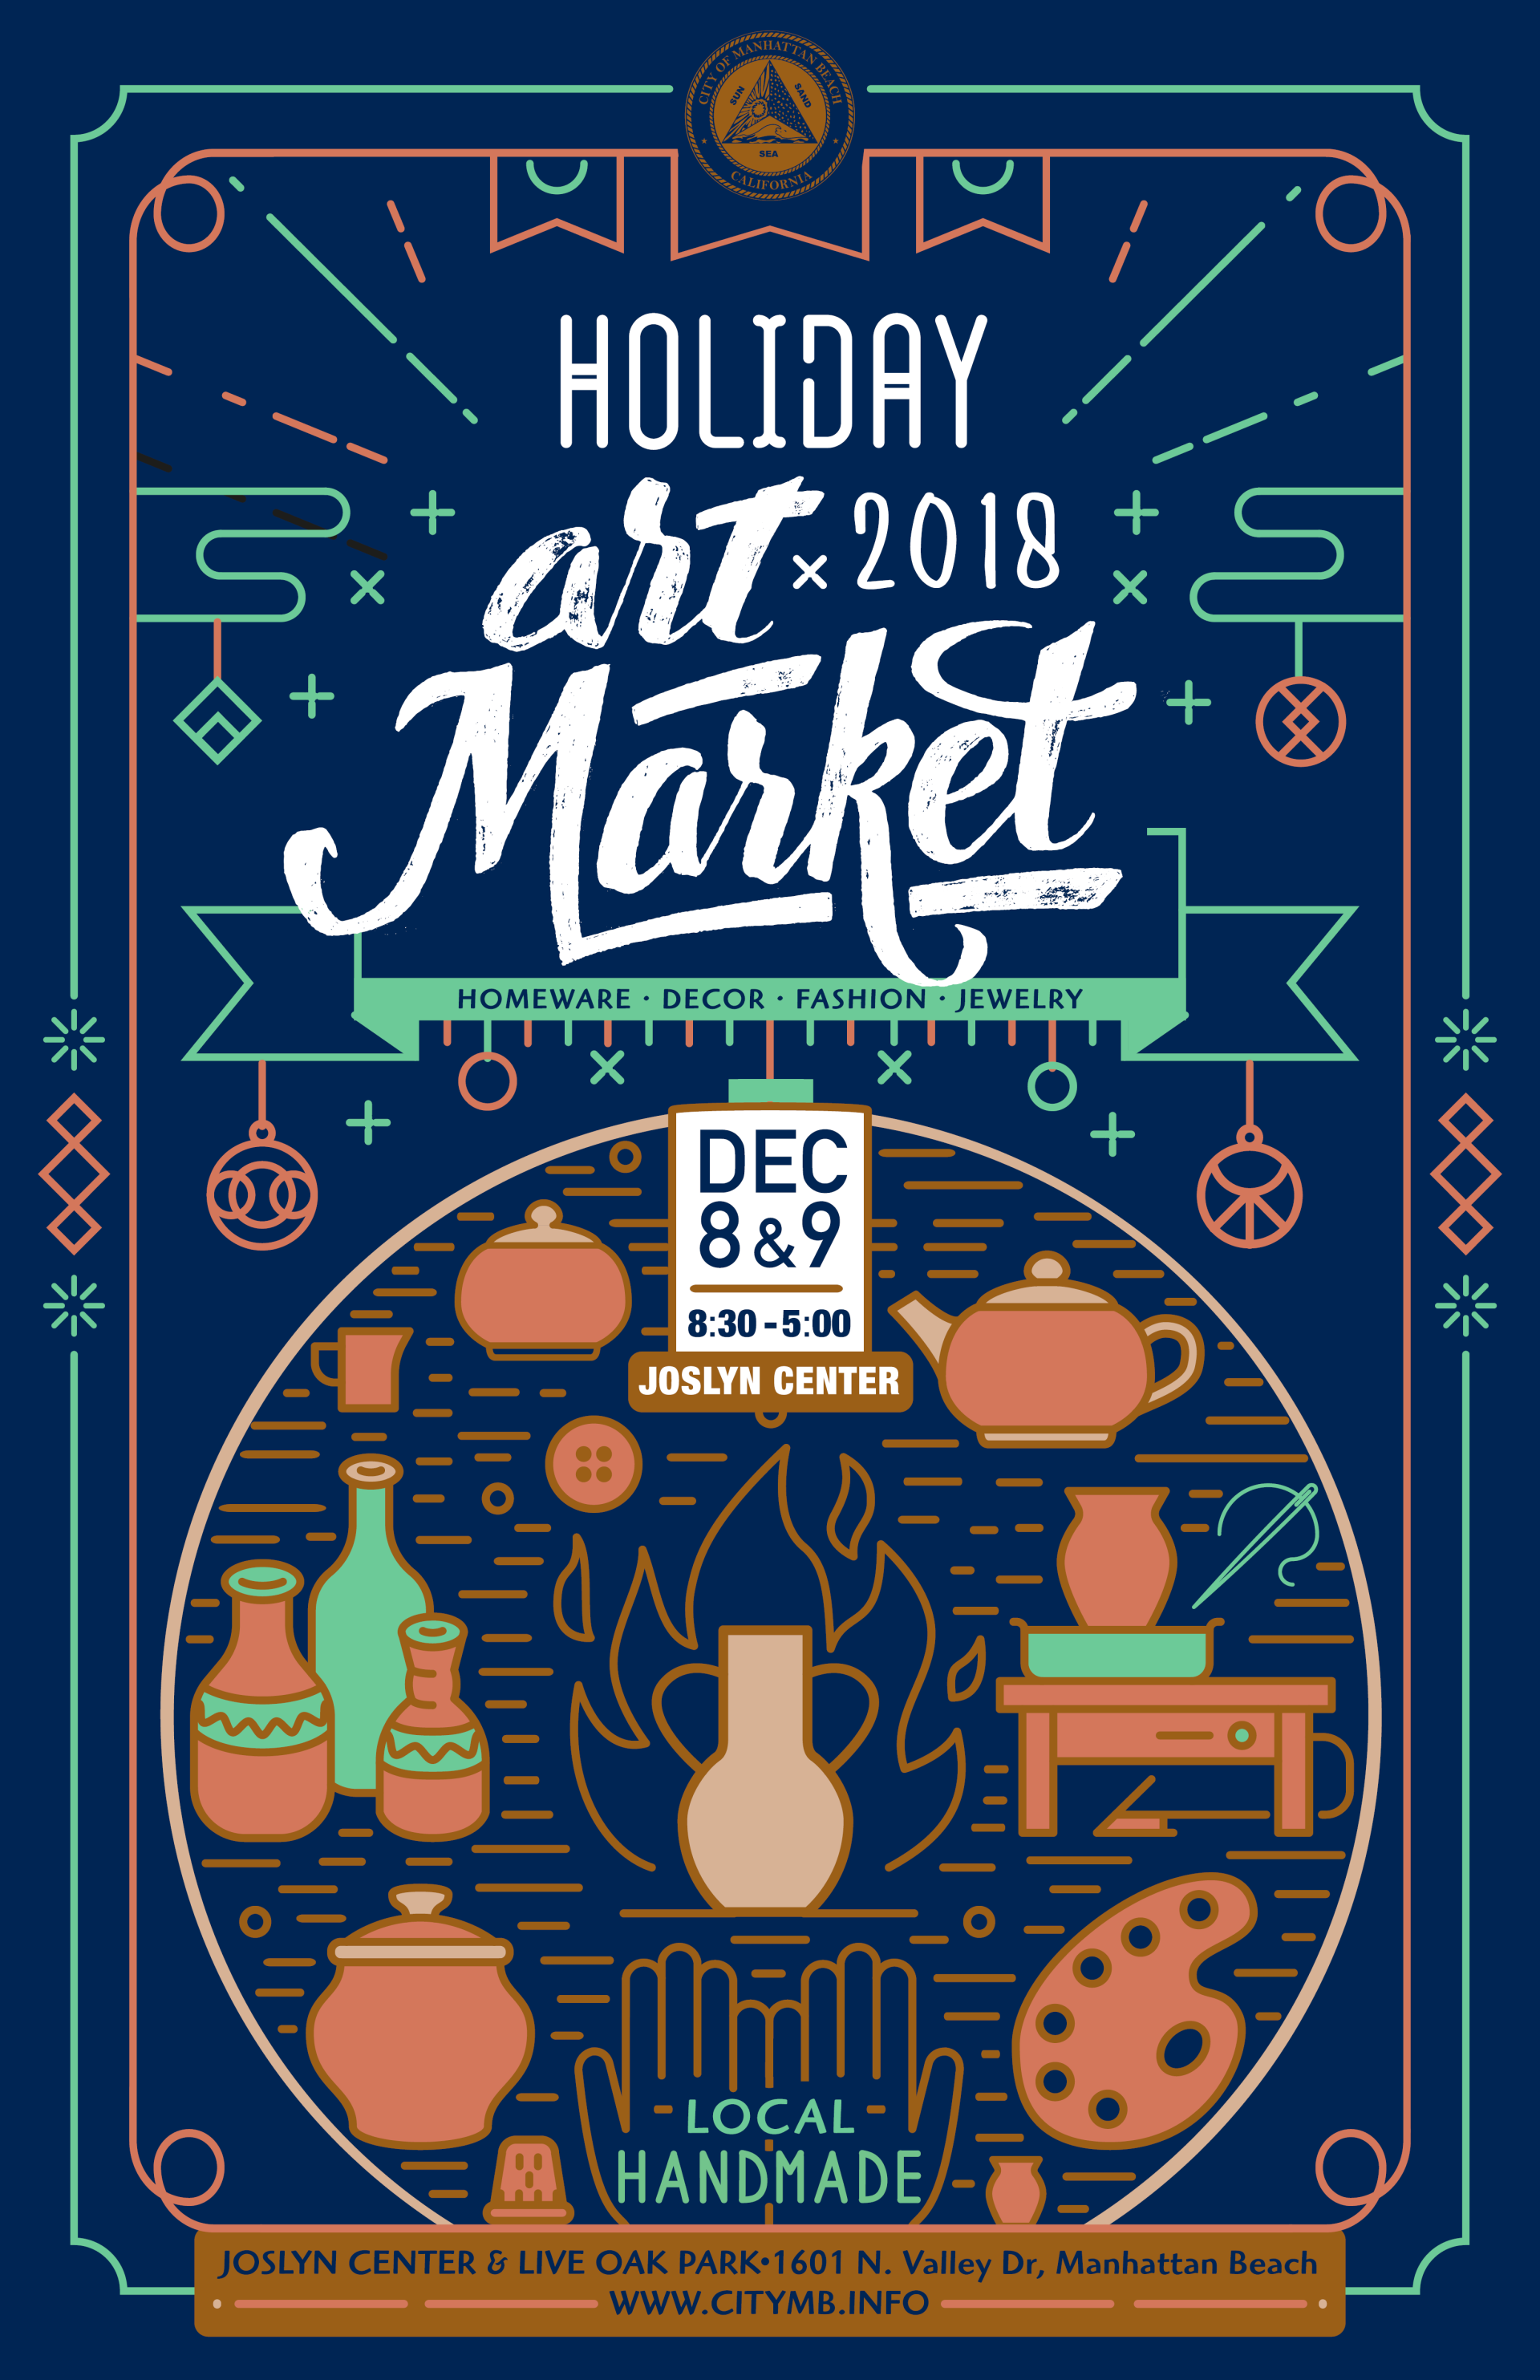 Holiday Art Market Poster